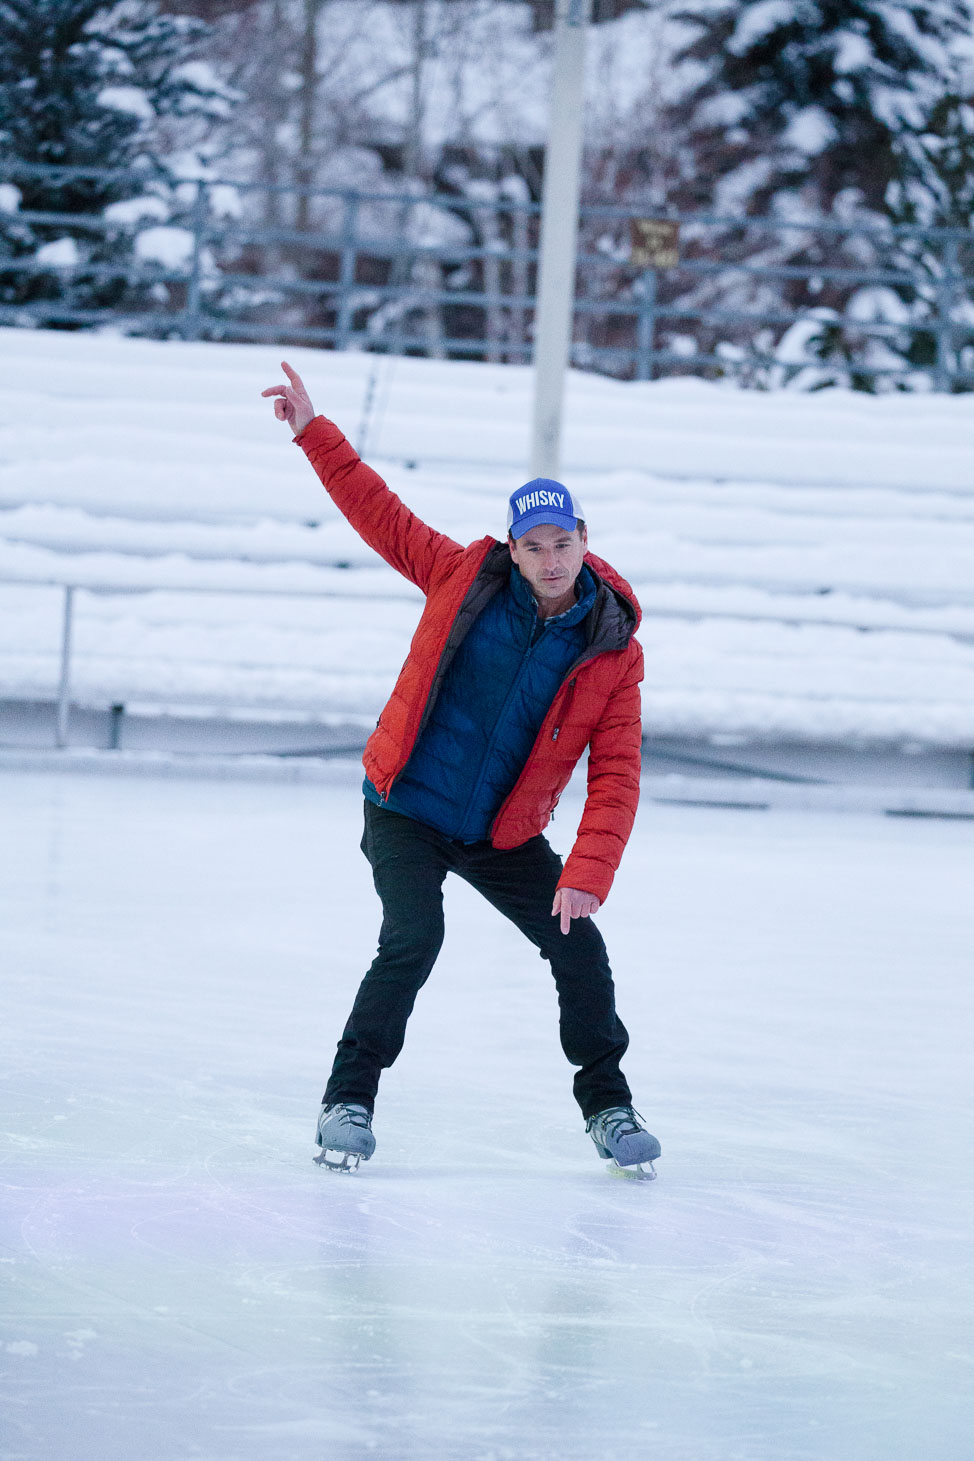 Ice-skating in Sun Valley, Idaho